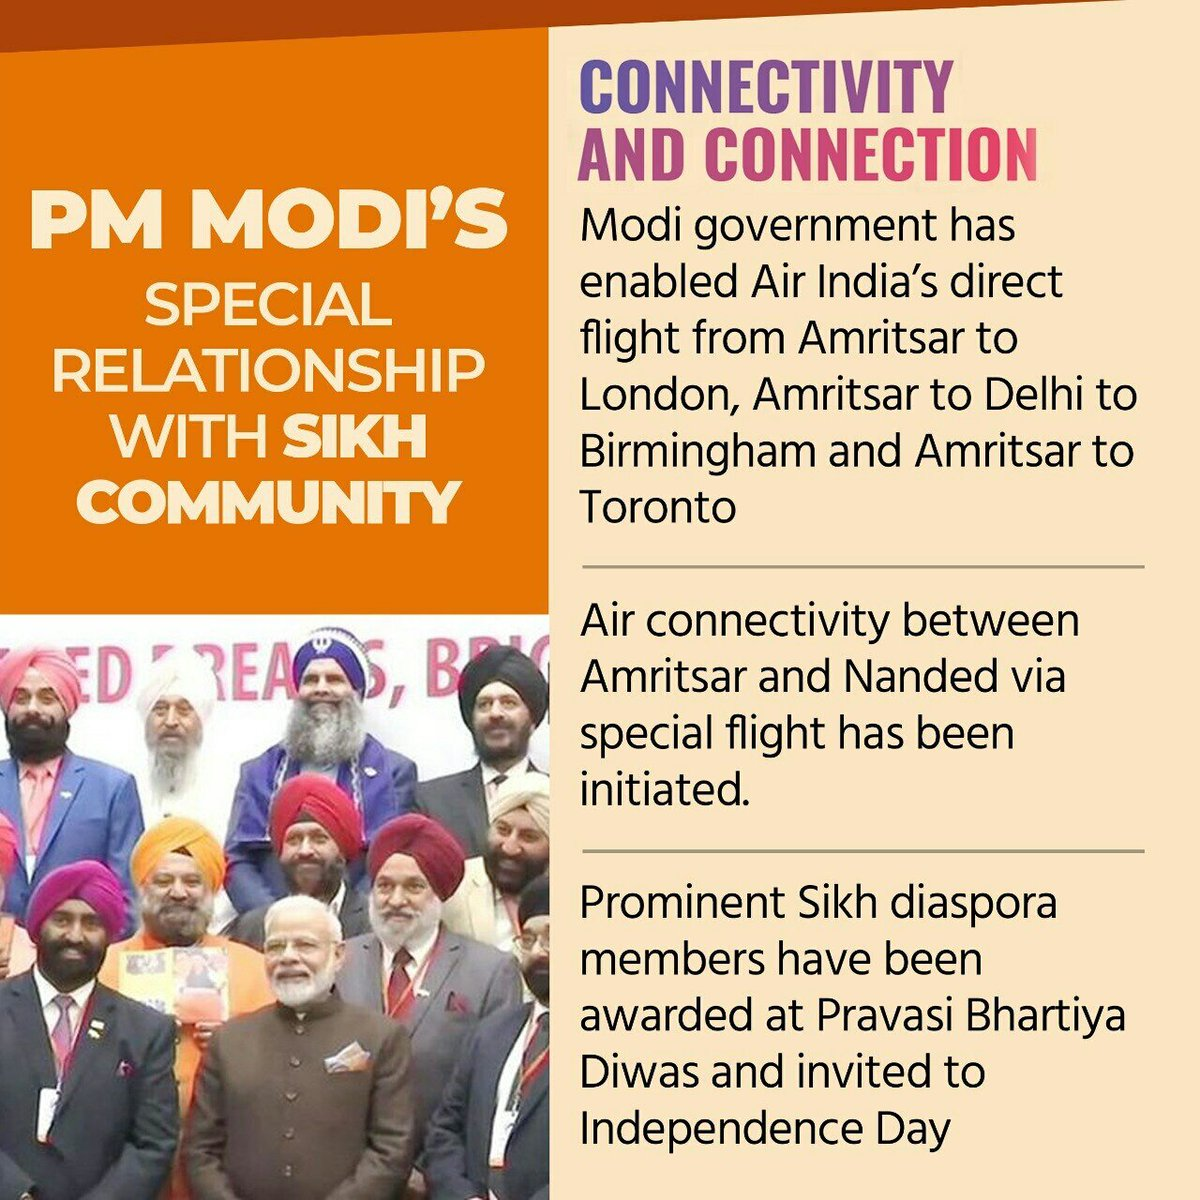 PM Shri @narendramodi's special relationship with Sikh community reflects in his government's actions!  Modi government has enabled Air India's direct flight from Amritsar to #London, Amritsar to #Delhi to #Birmingham and #Amritsar to #Toronto.